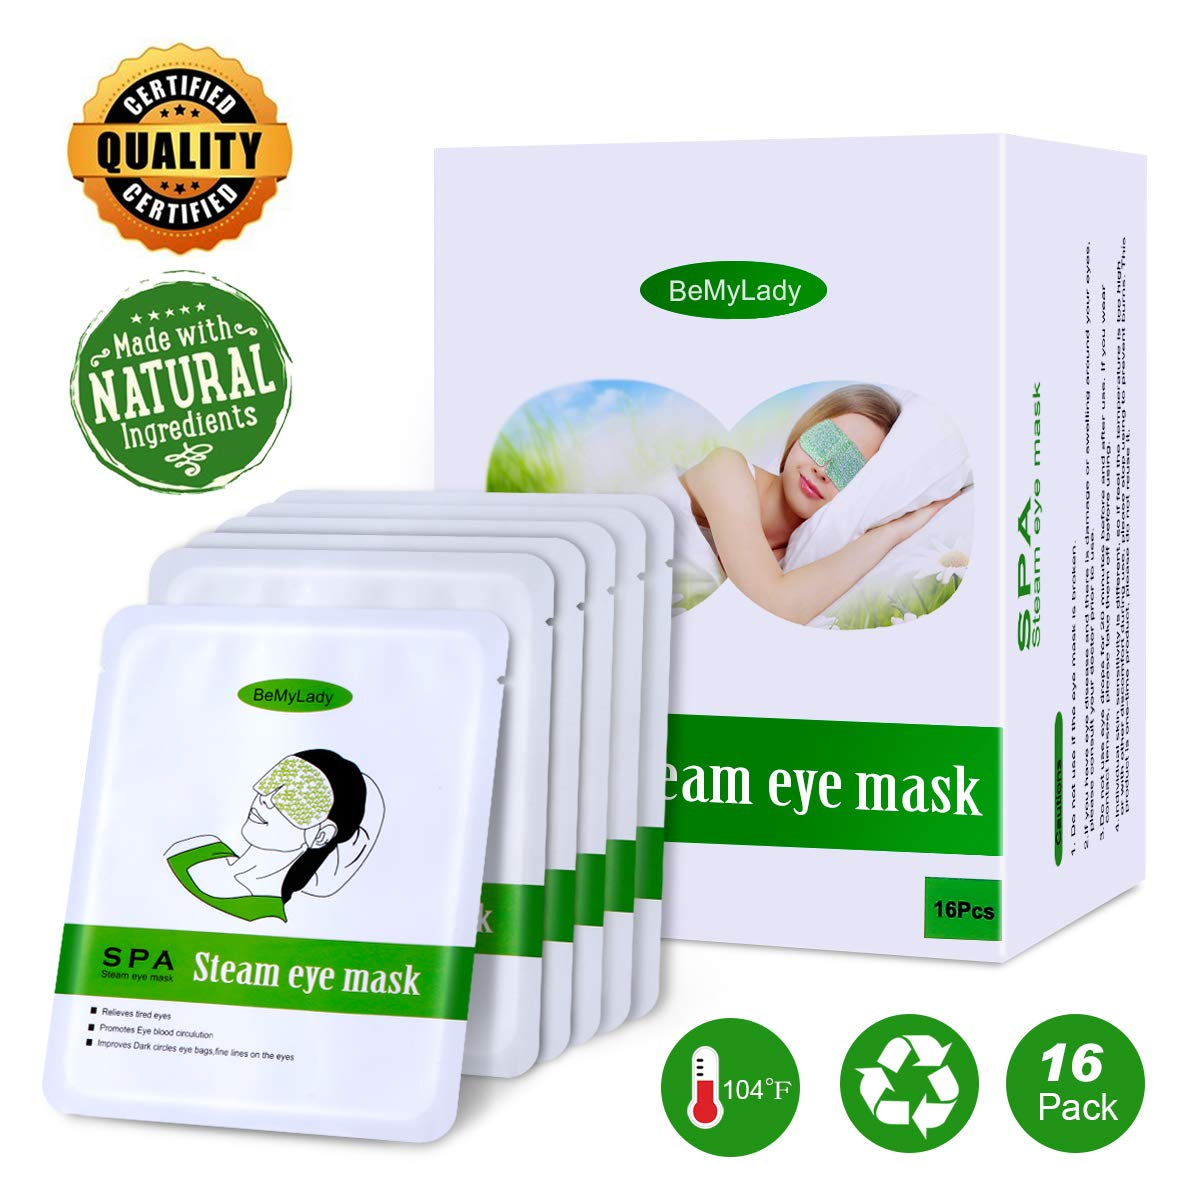 16 Packs Steam Eye Mask for Dry Eyes- Disposable Moist Heating Compress Pads for Sleeping, Relief Eye Fatigue by ProCIV